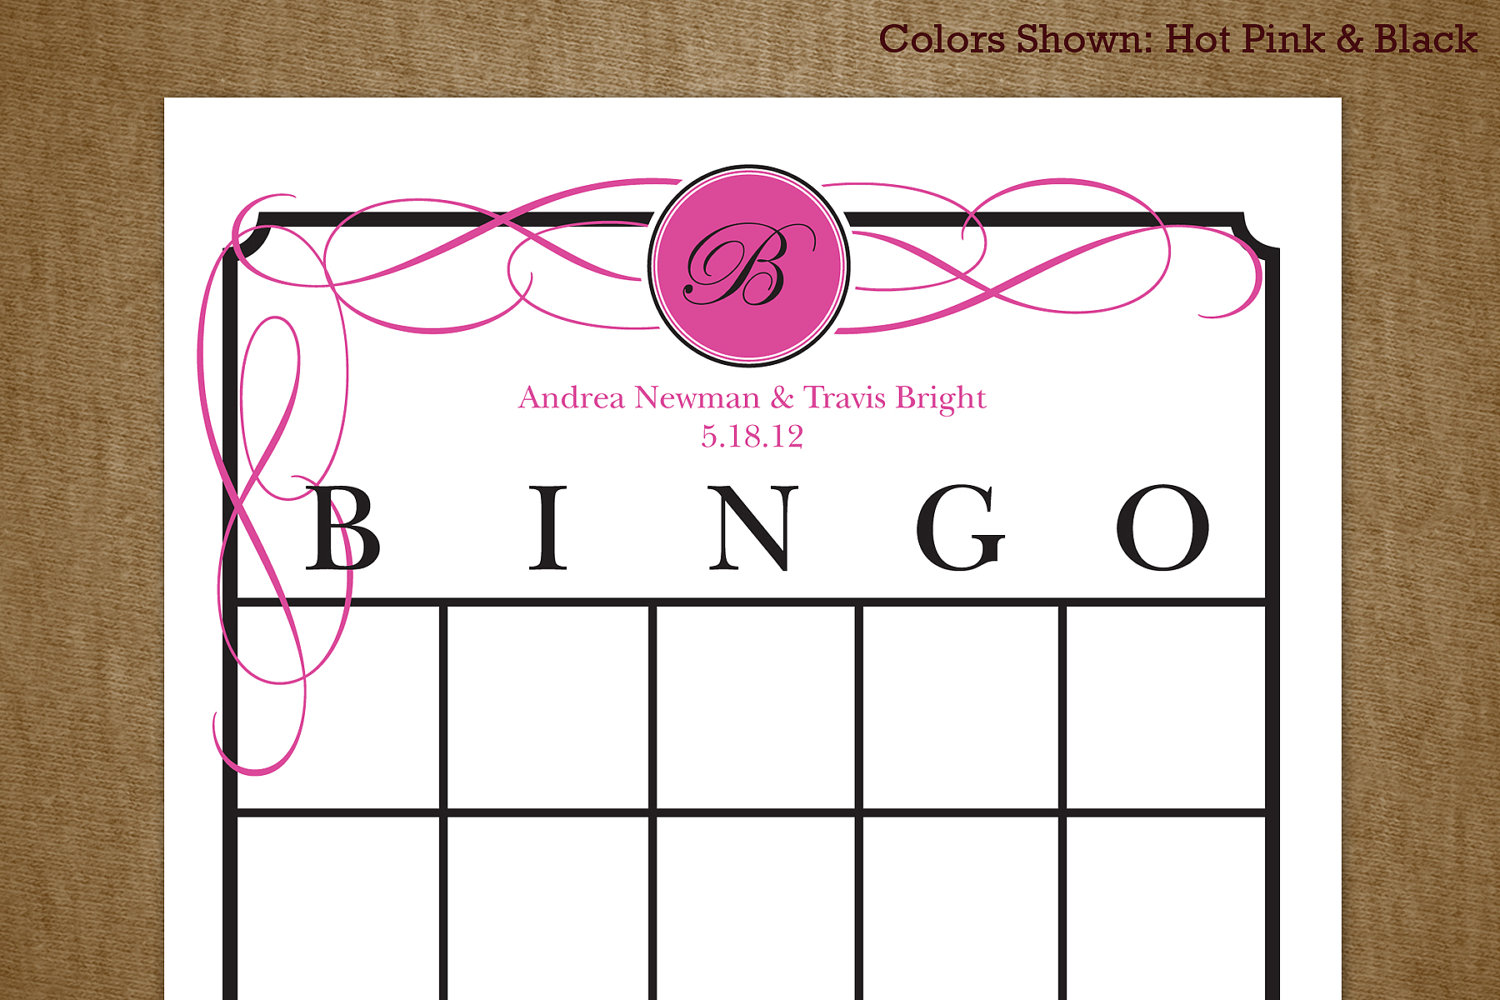 Printable Wedding Gift Card Free : ... Bridal Shower Bingo Printable Cards and Free Printable Bridal Shower